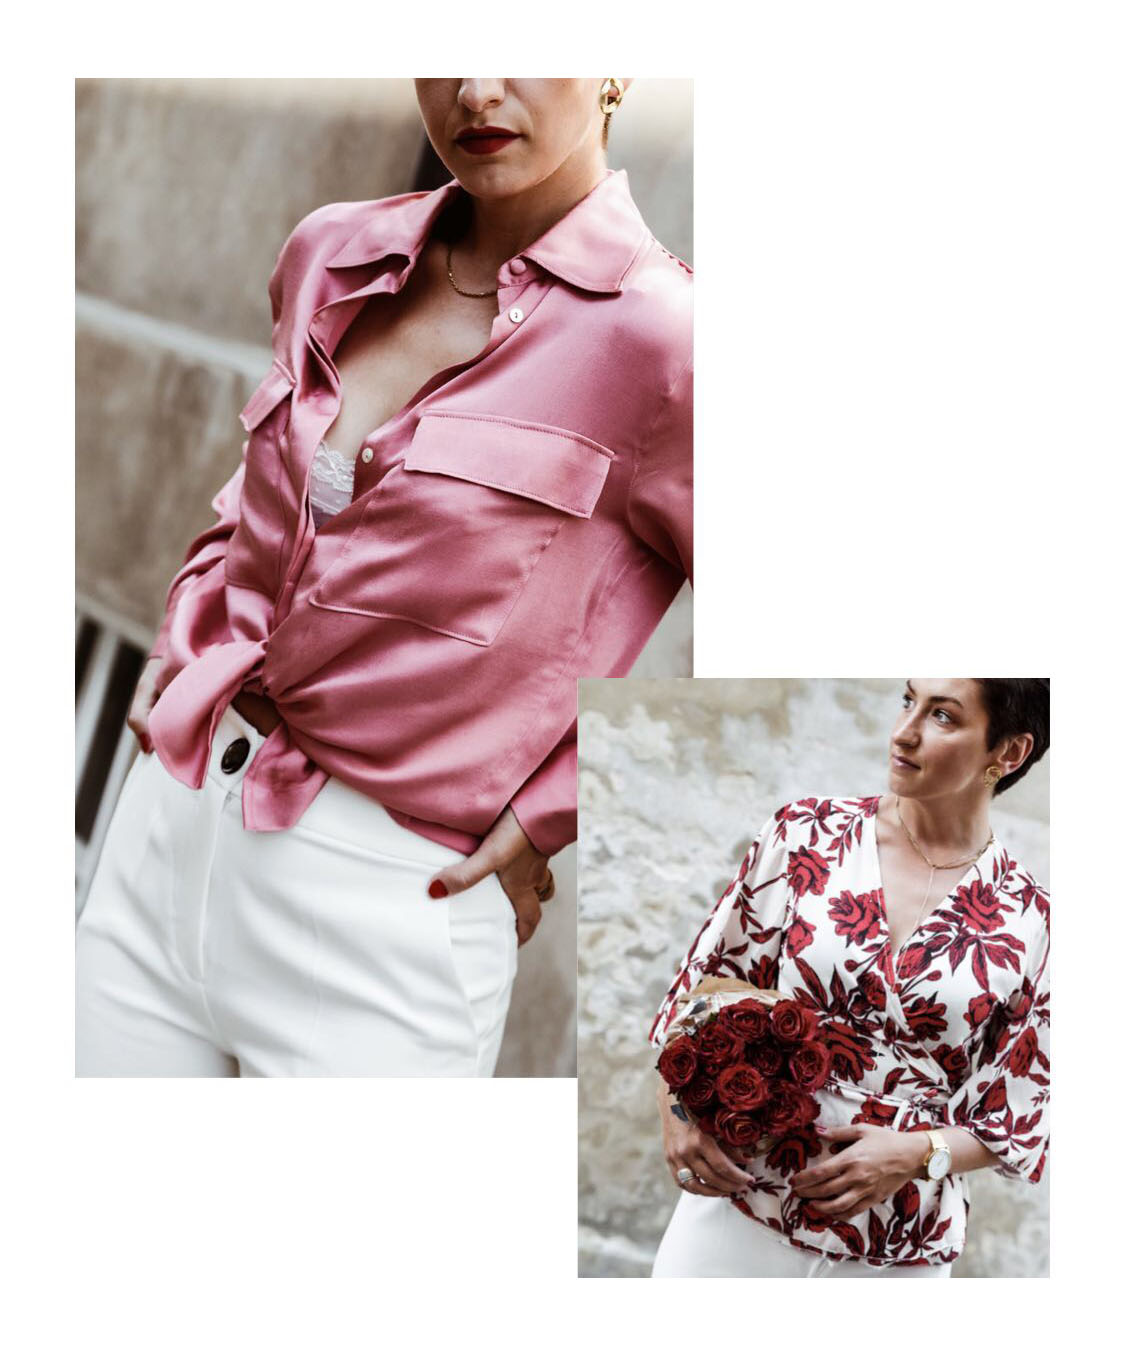 summer shirts and blouses for work and casual, summer fashion, summer style 2018, summer outfits, work wear summer outfits, mihabalan.com